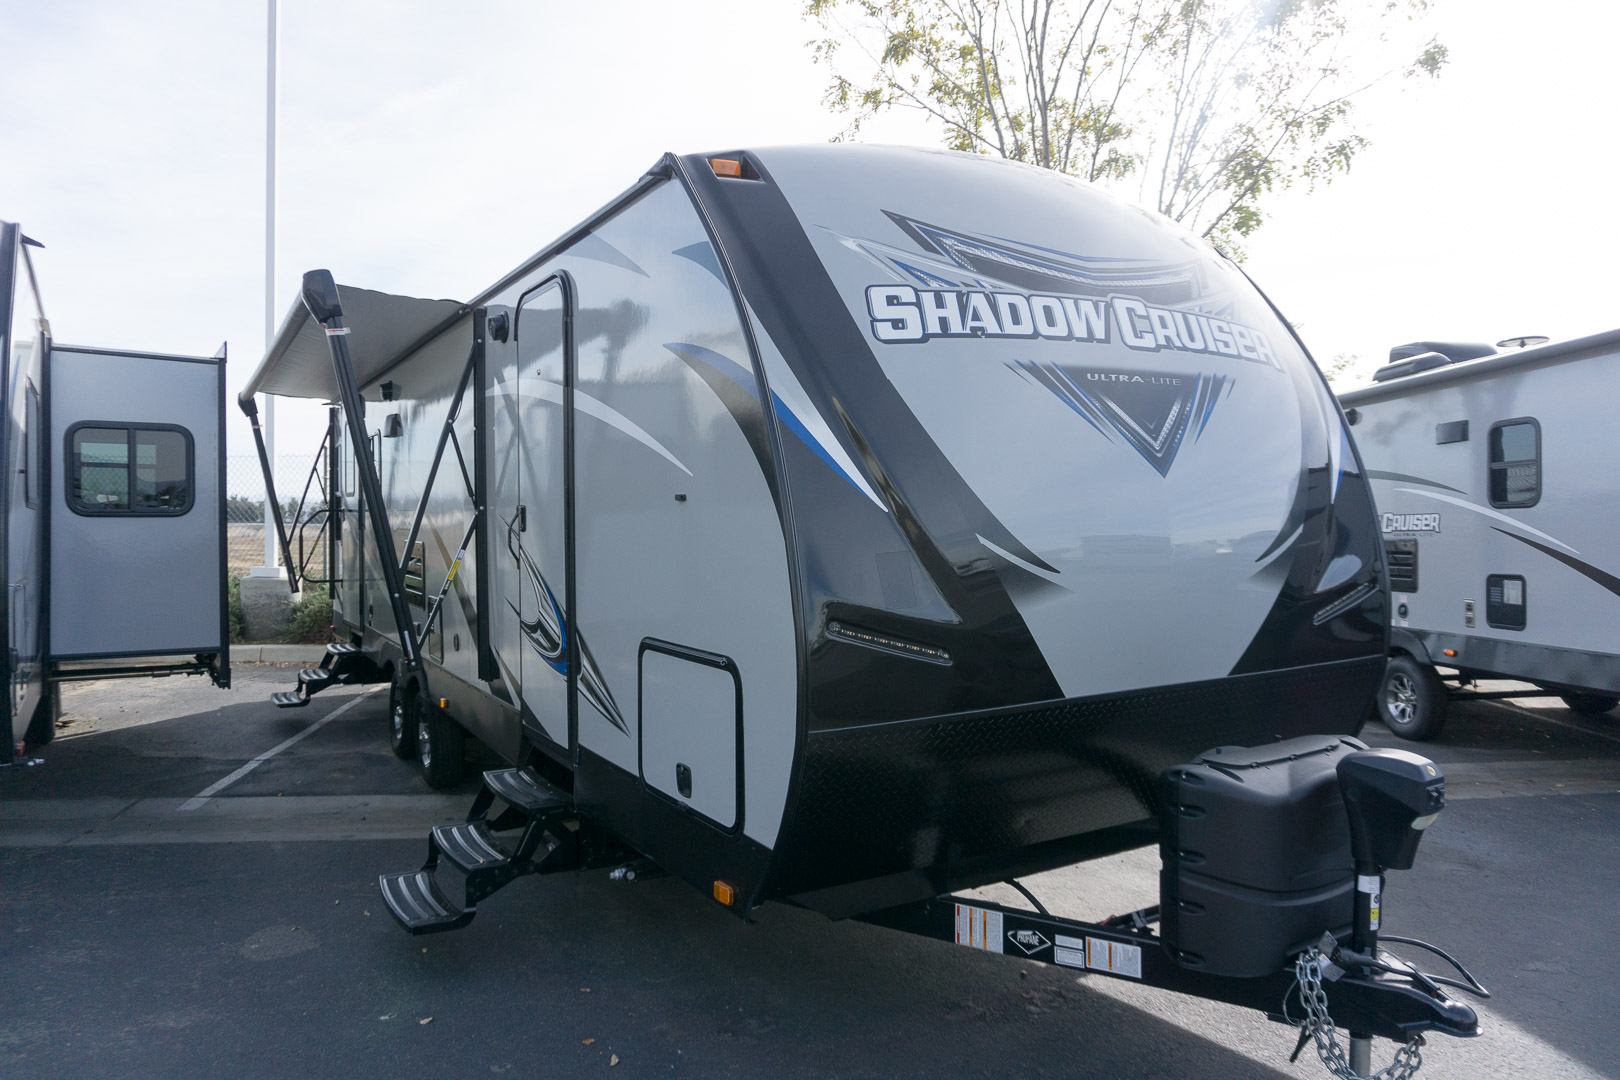 2019 CRUISER RV SHADOW CRUISER ULTRA LITE 263RLS